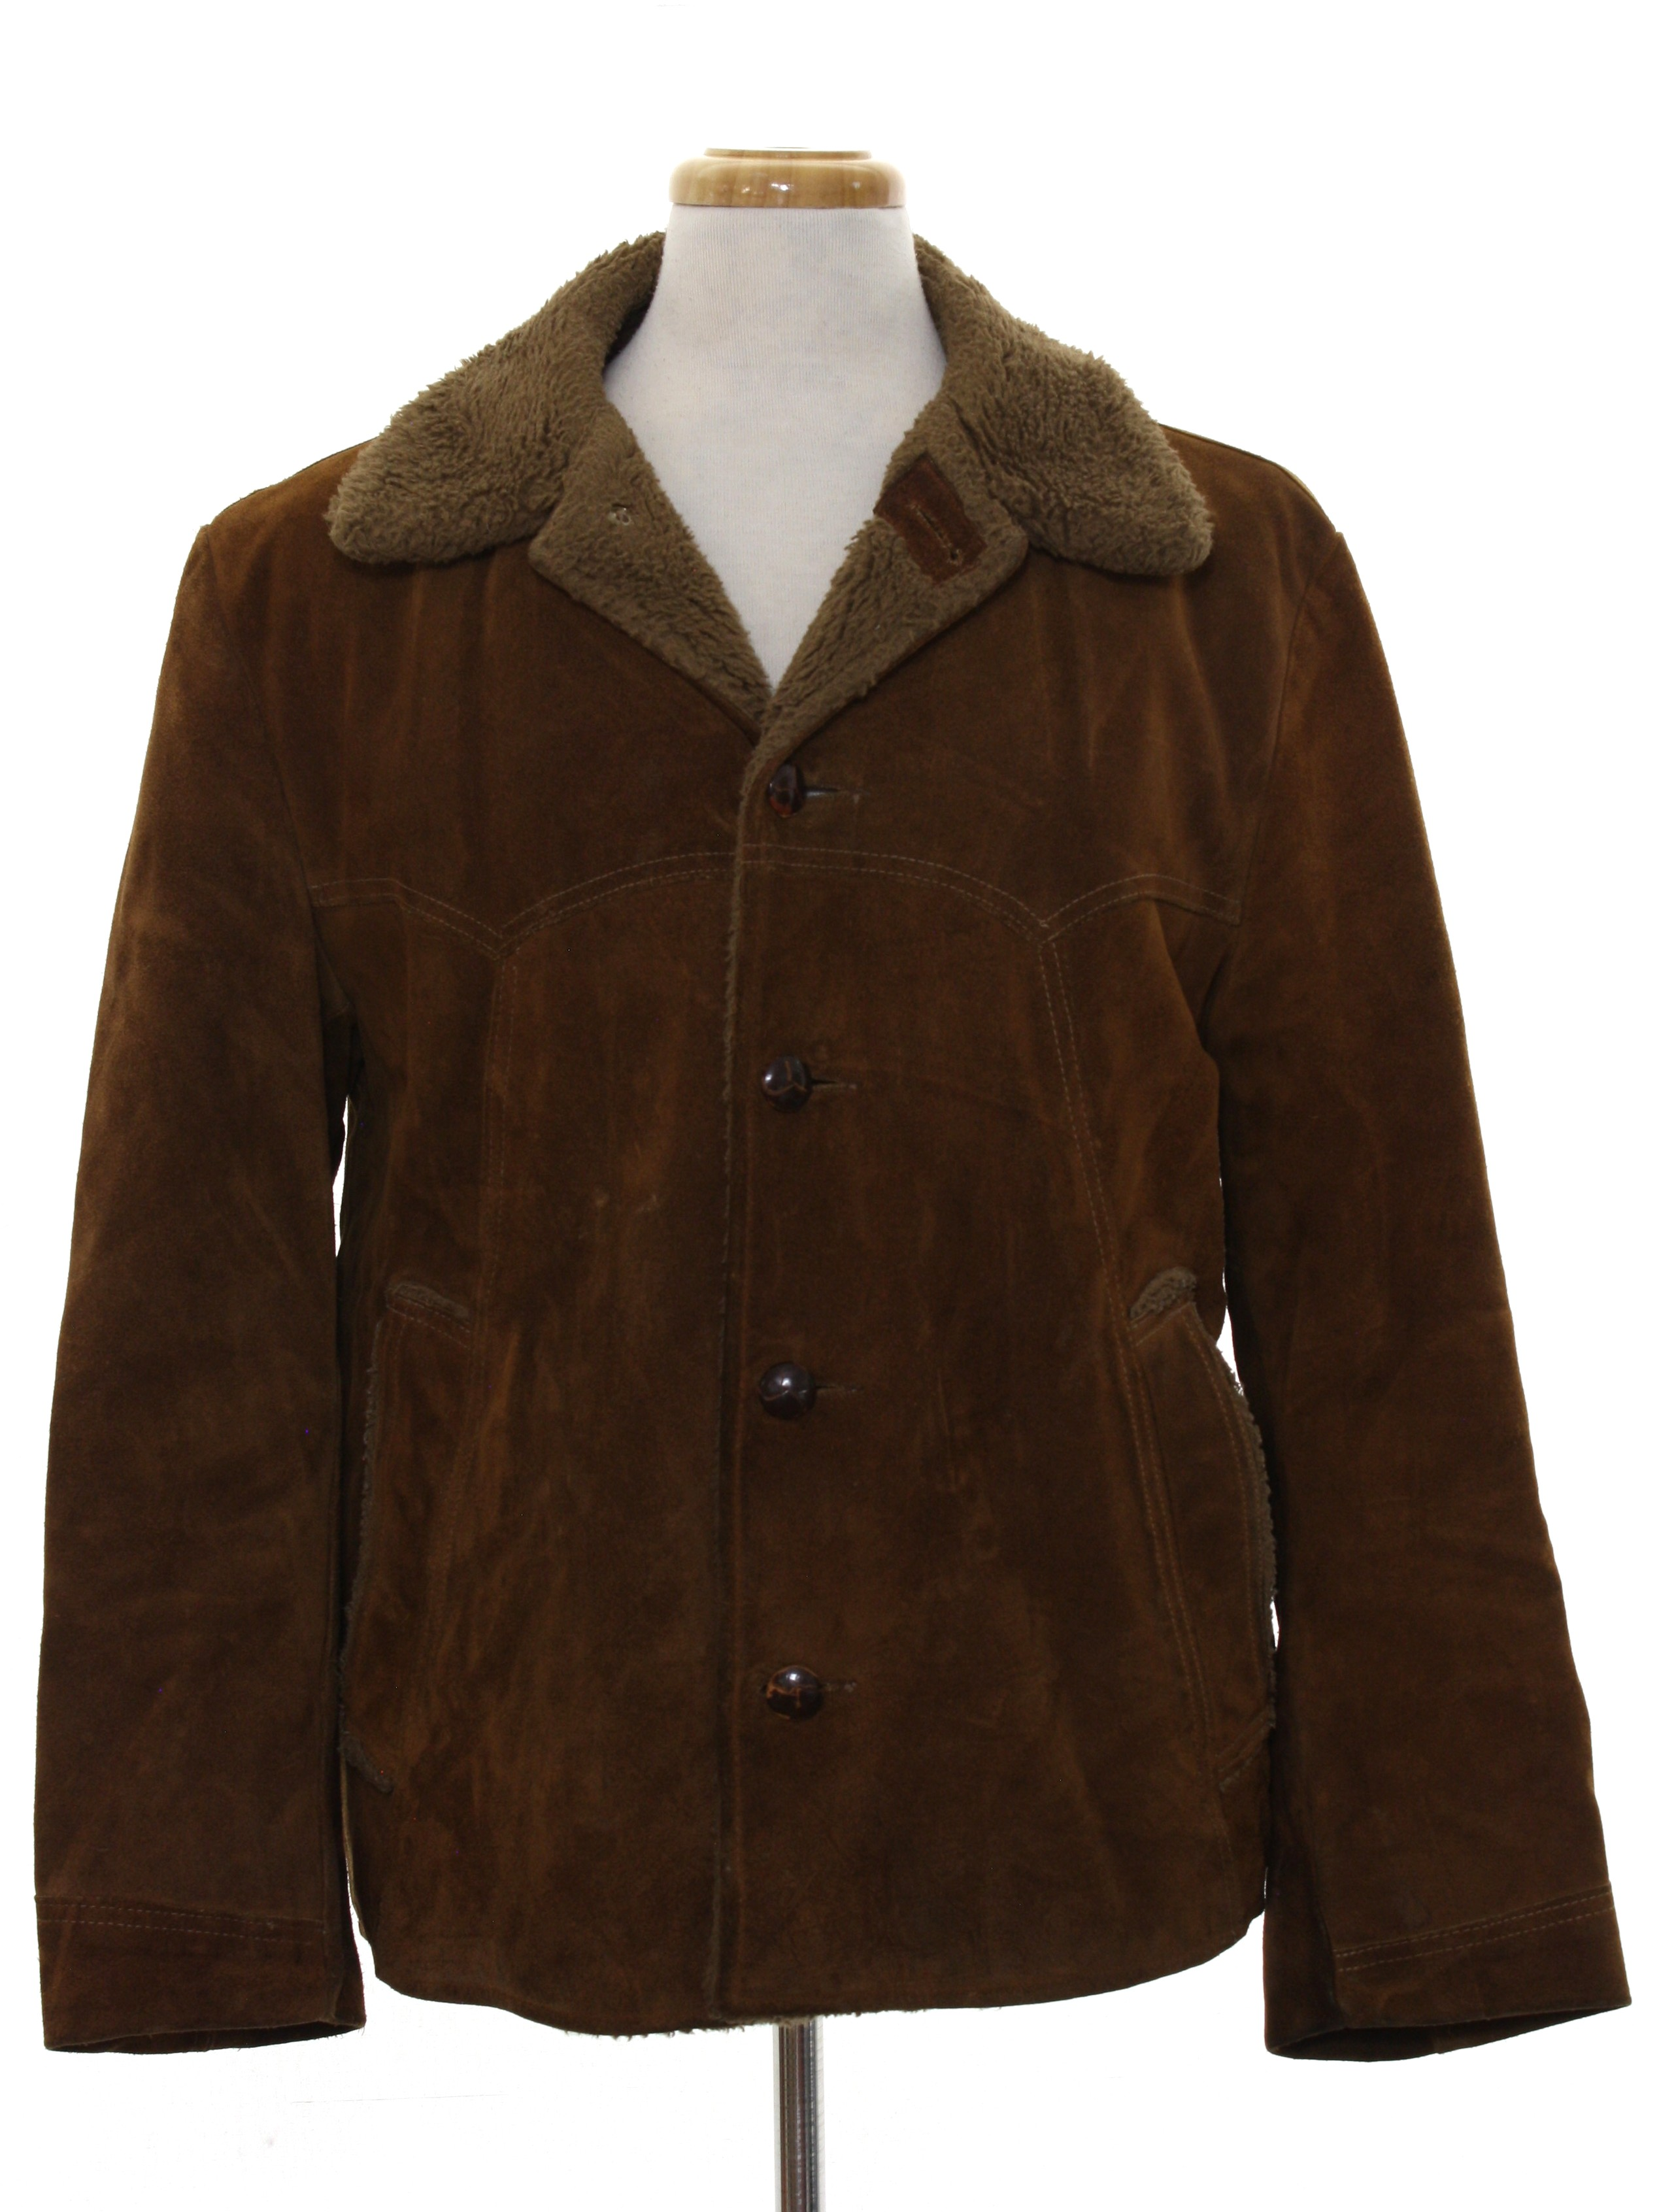 Lakeland 70\'s Vintage Leather Jacket: Late 70s or Early 80s ...